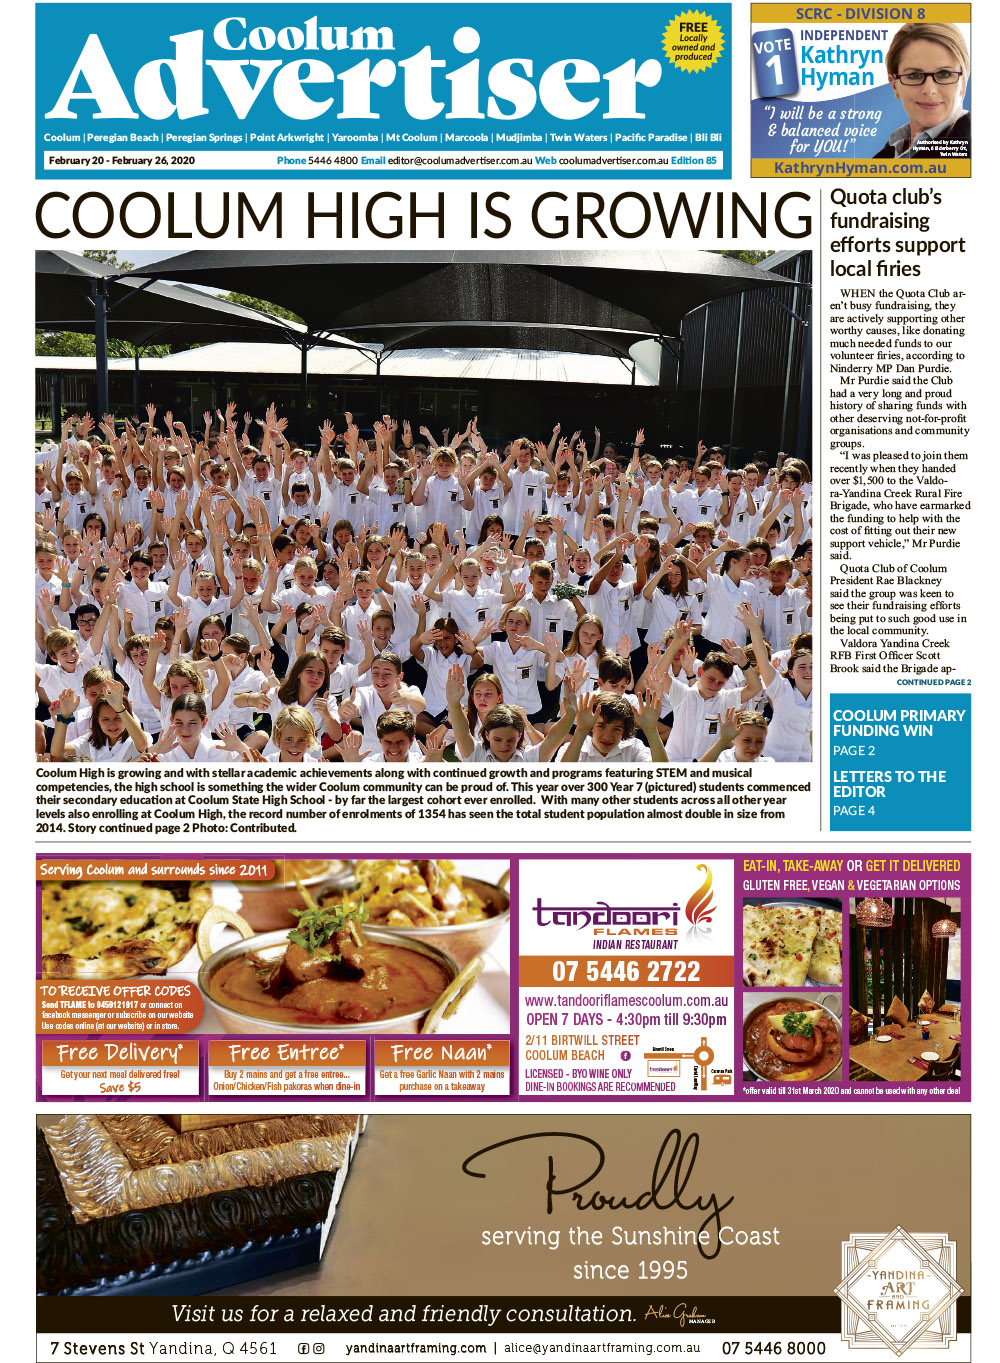 Coolum February 20-2020-issue85.indd